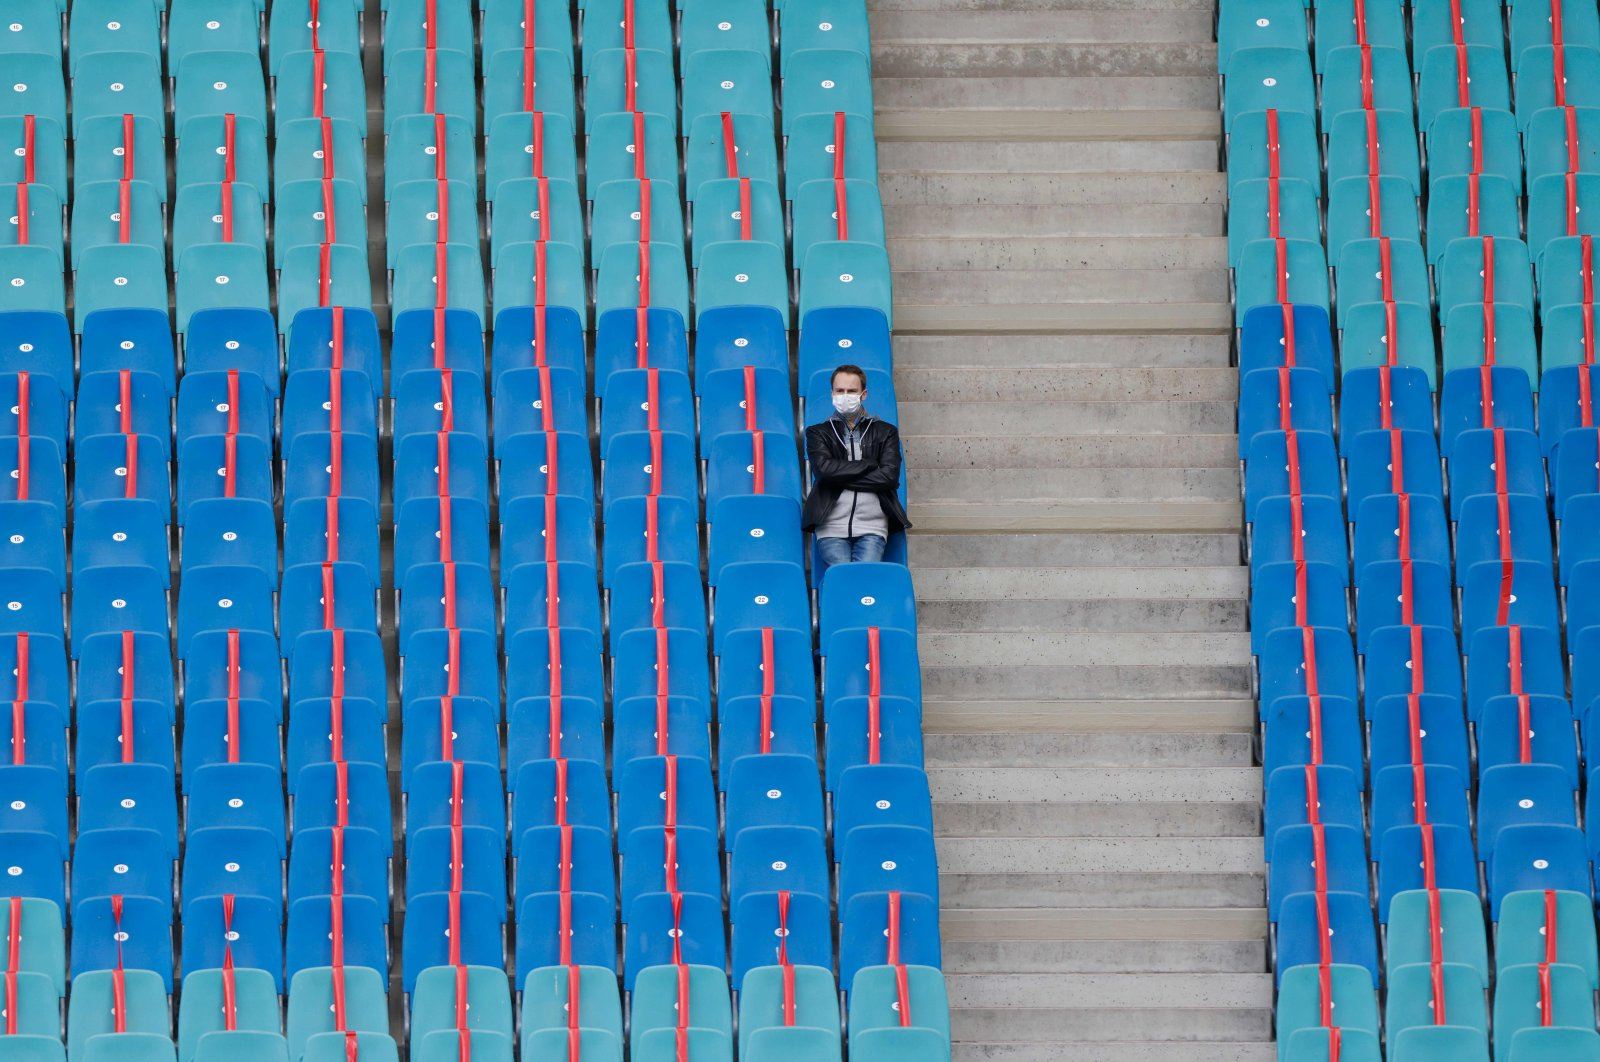 Red ribbons are placed on the spectator's seats to maintain social distancing as a man is seen alone in a tribune at the stadium in Leipzig, eastern Germany, Oct. 24, 2020.